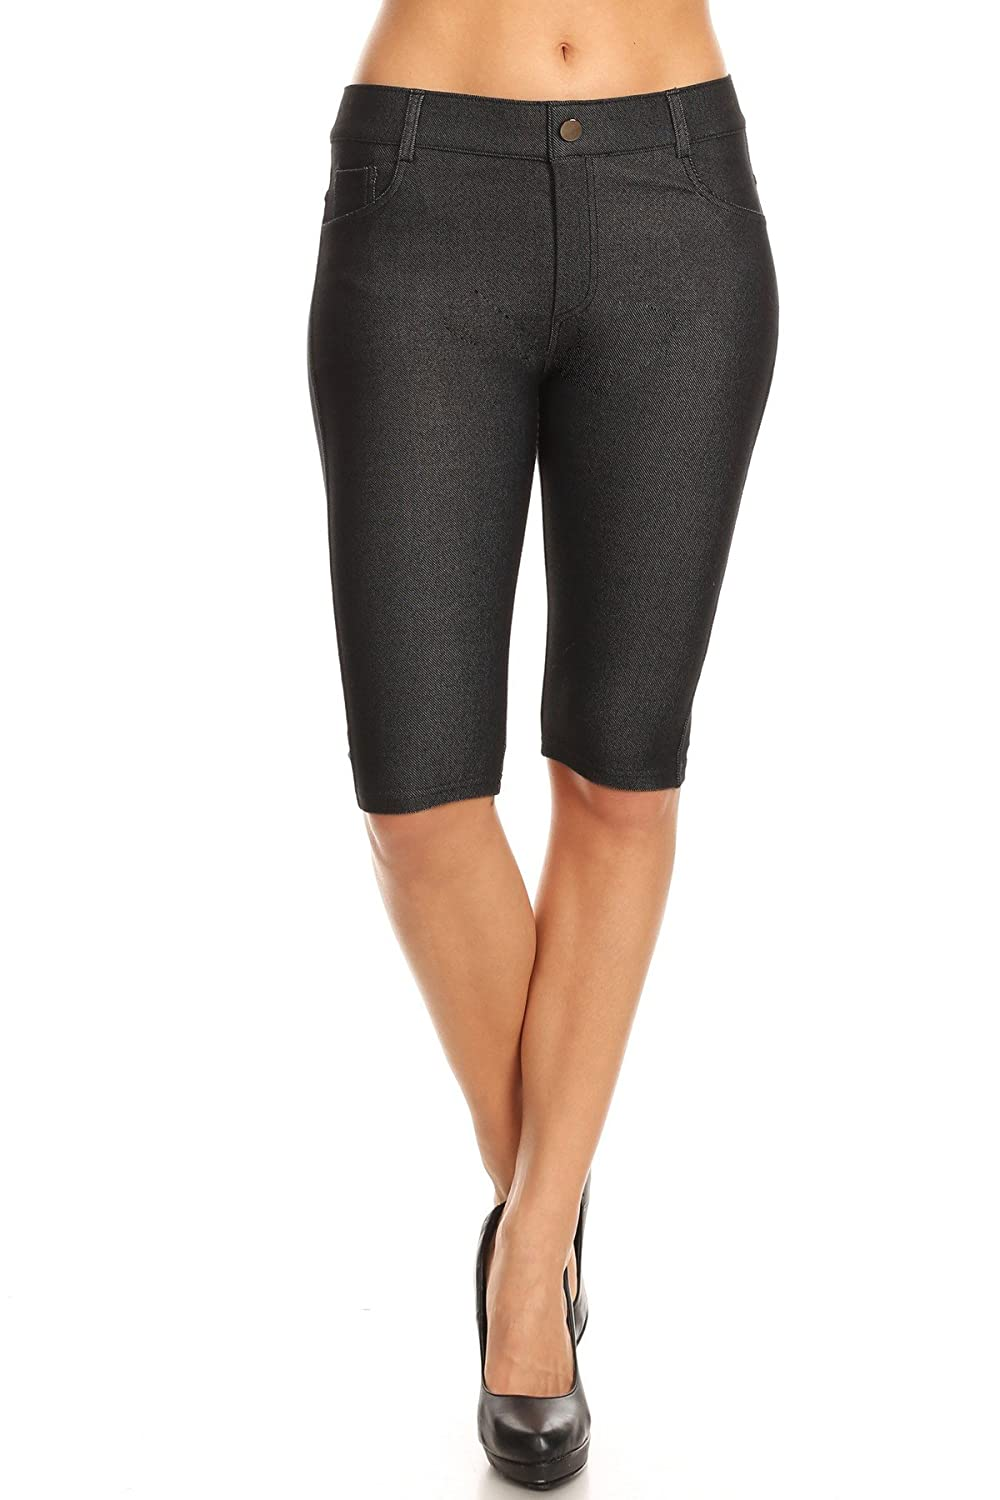 be4be111a6532 Bermuda length jeggings featuring a light sheen and jean-style  construction, Lightweight, breathable cotton-blend material for all day  comfort